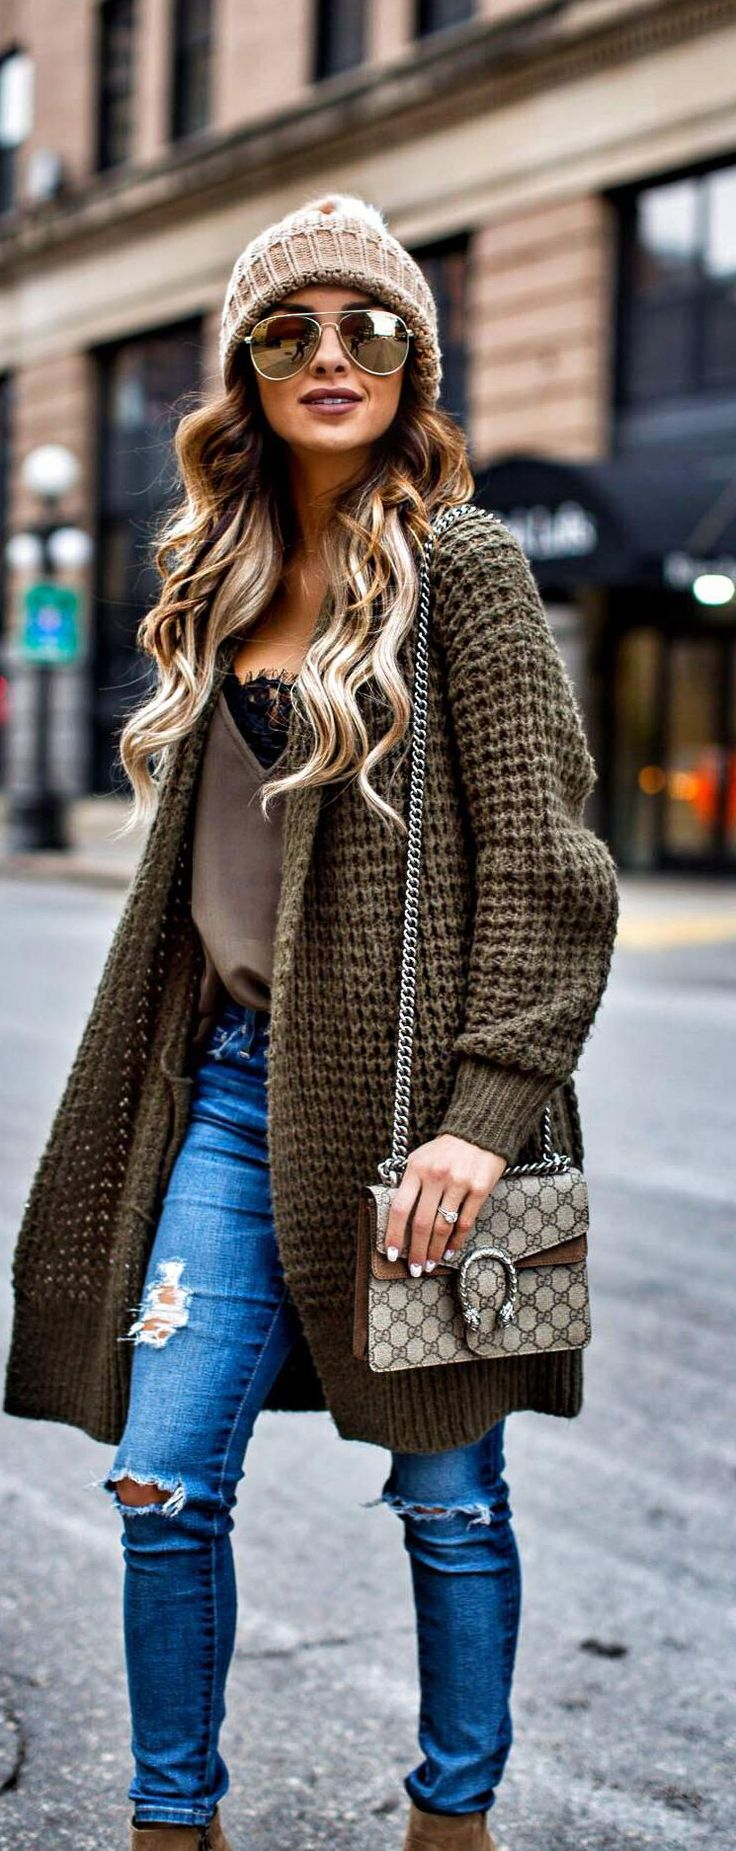 Waffle Knit Cardigan Clothing, Shoes & Jewelry - Women - women's dresses casual - http://amzn.to/2kVrLsu